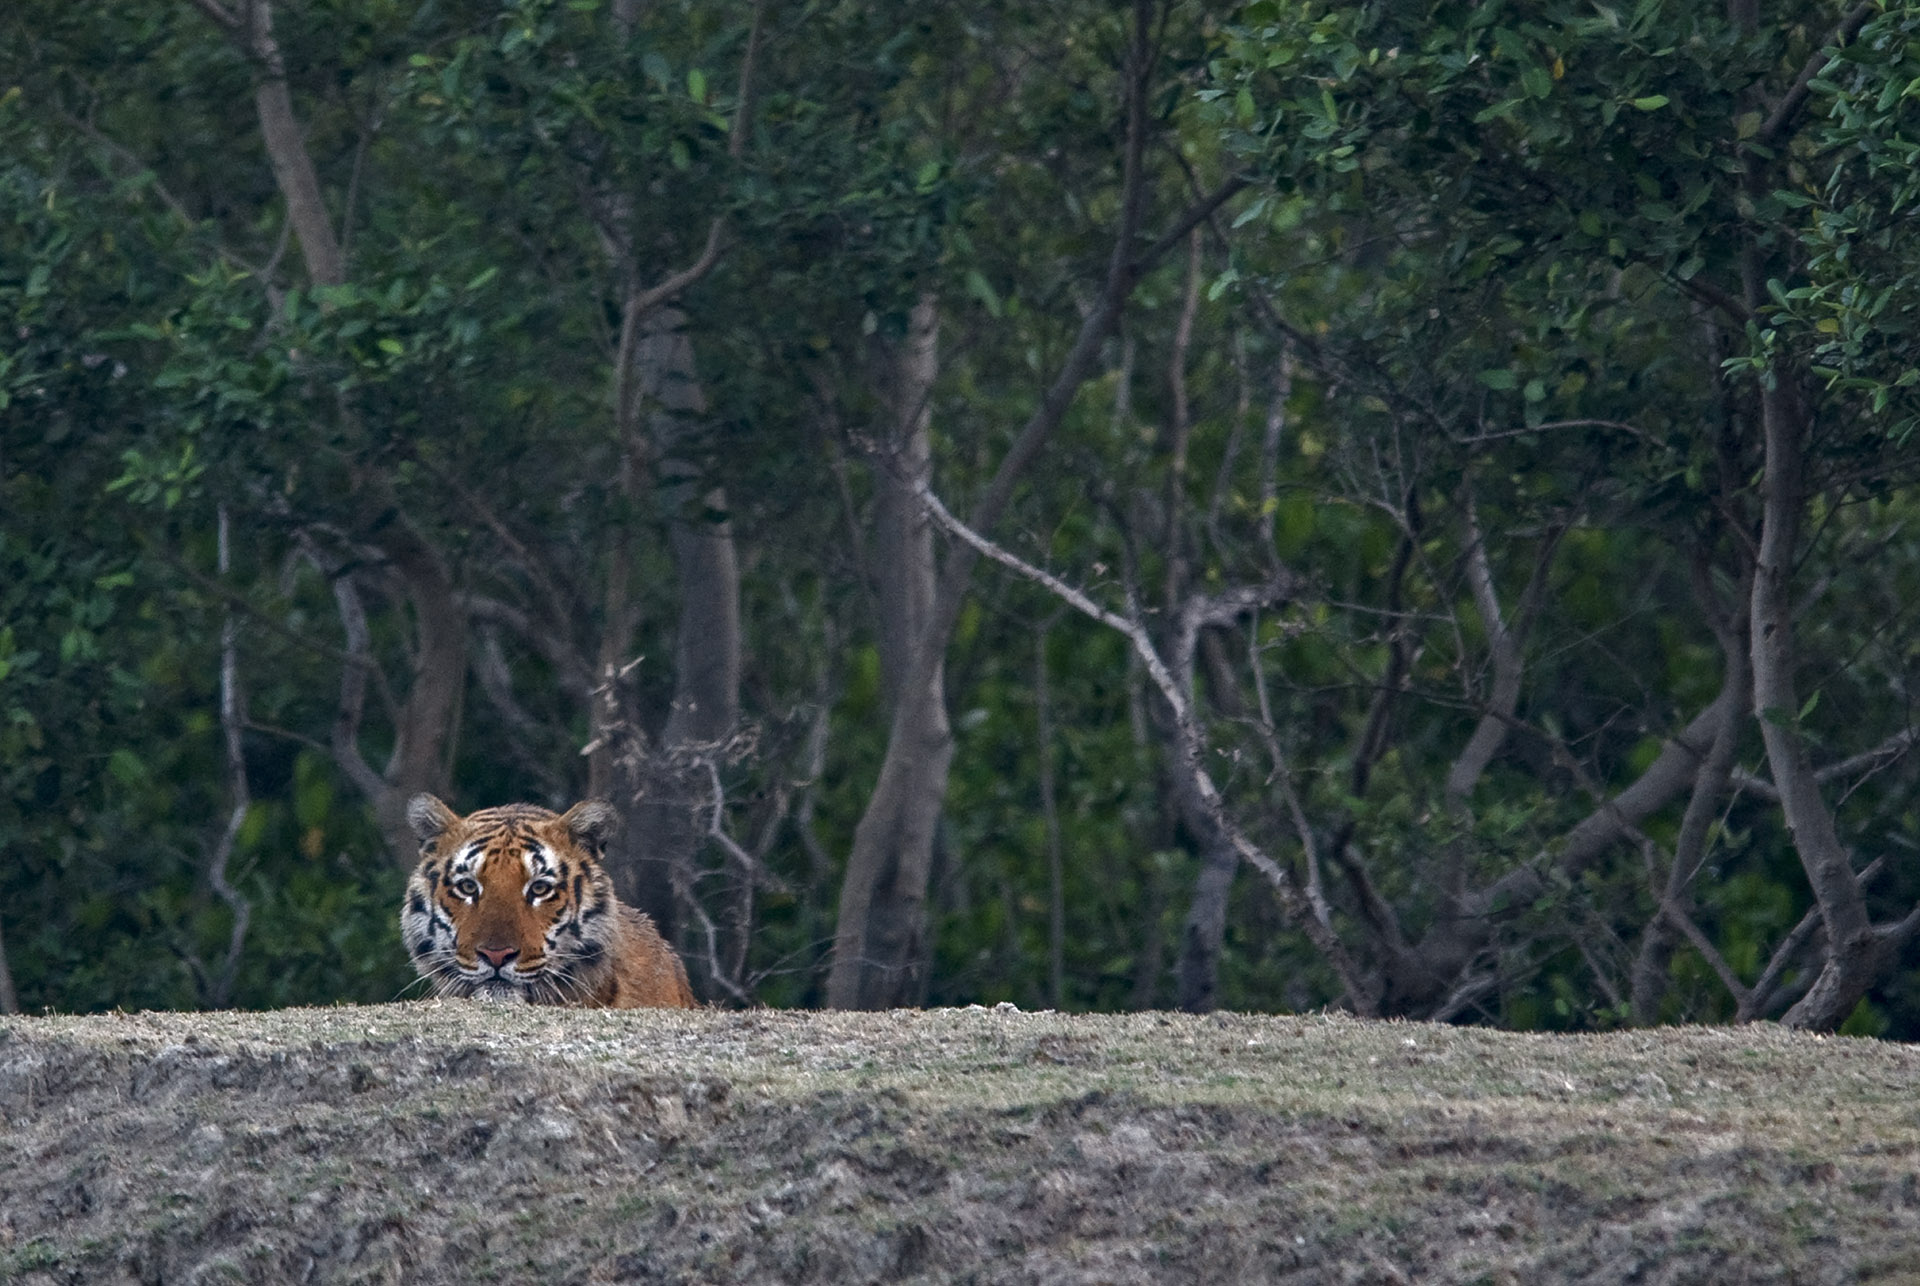 The Bengal tiger is the Sundarban's apex predator. The mangrove forests are one of the largest remaining continuous habitats of the tiger in the world. A little over 100 tigers survive in the Indian part of the Sundarbans.